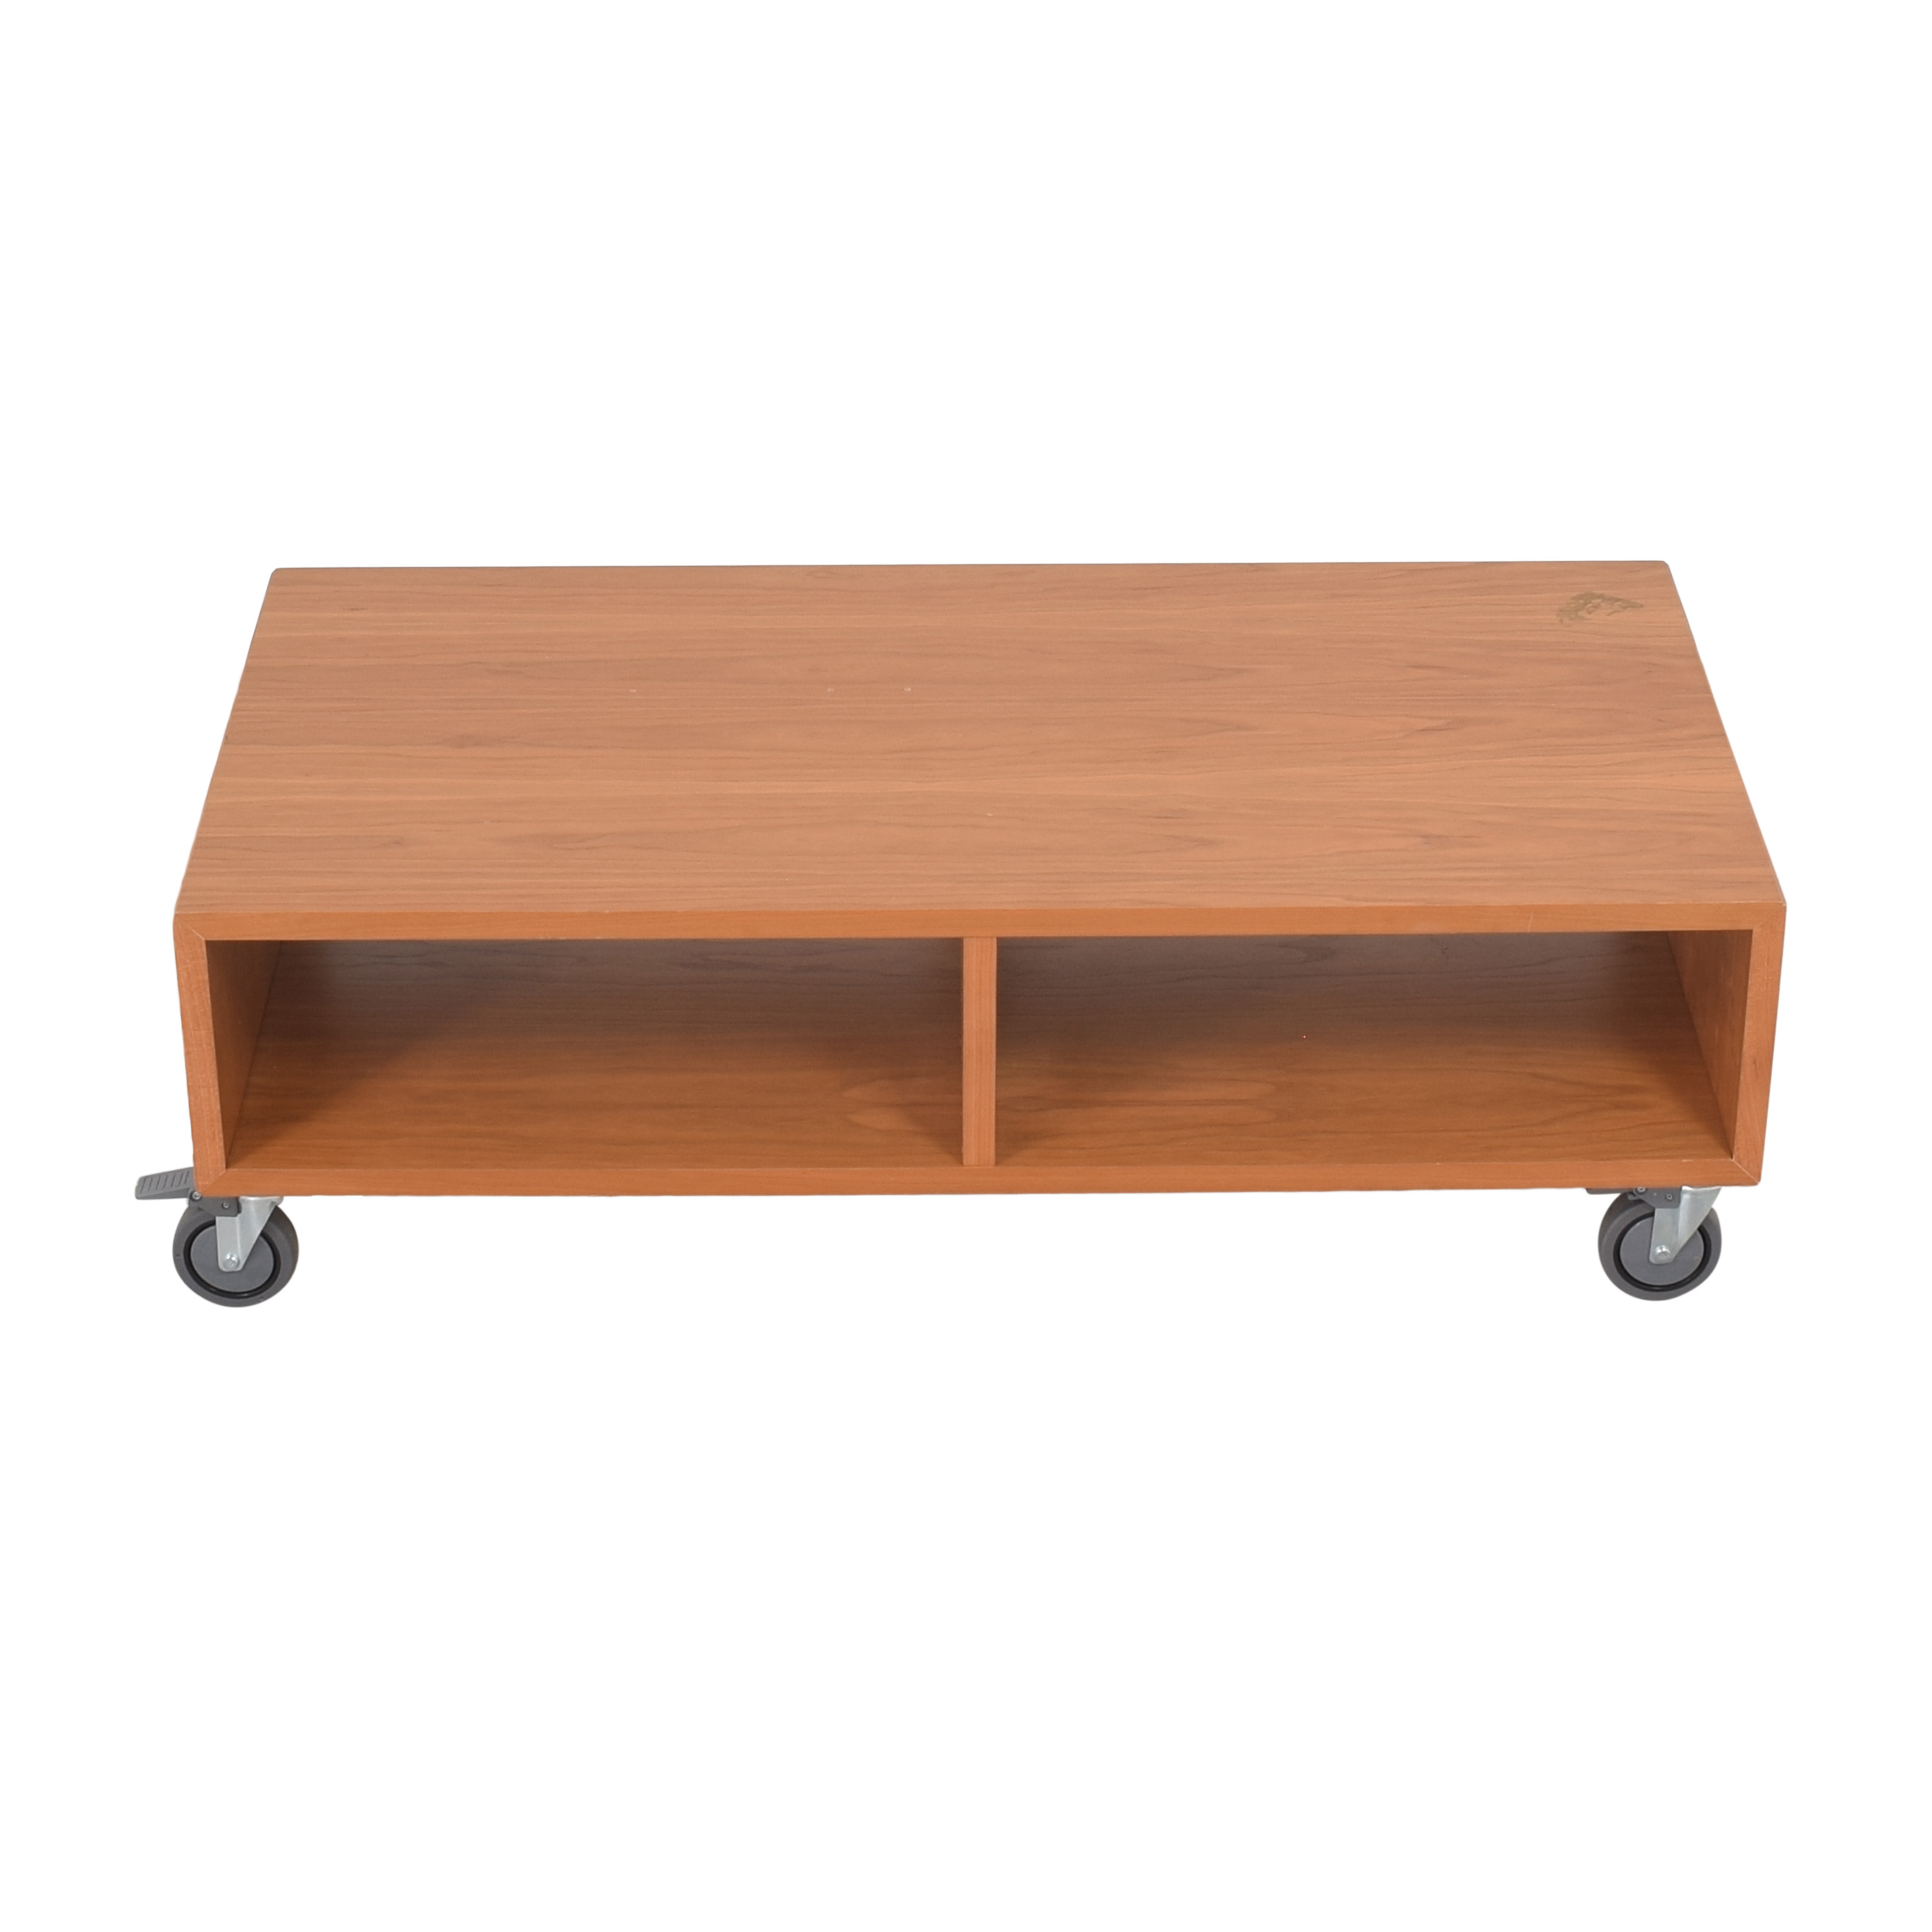 buy Room & Board Cocktail Table on Casters Room & Board Tables